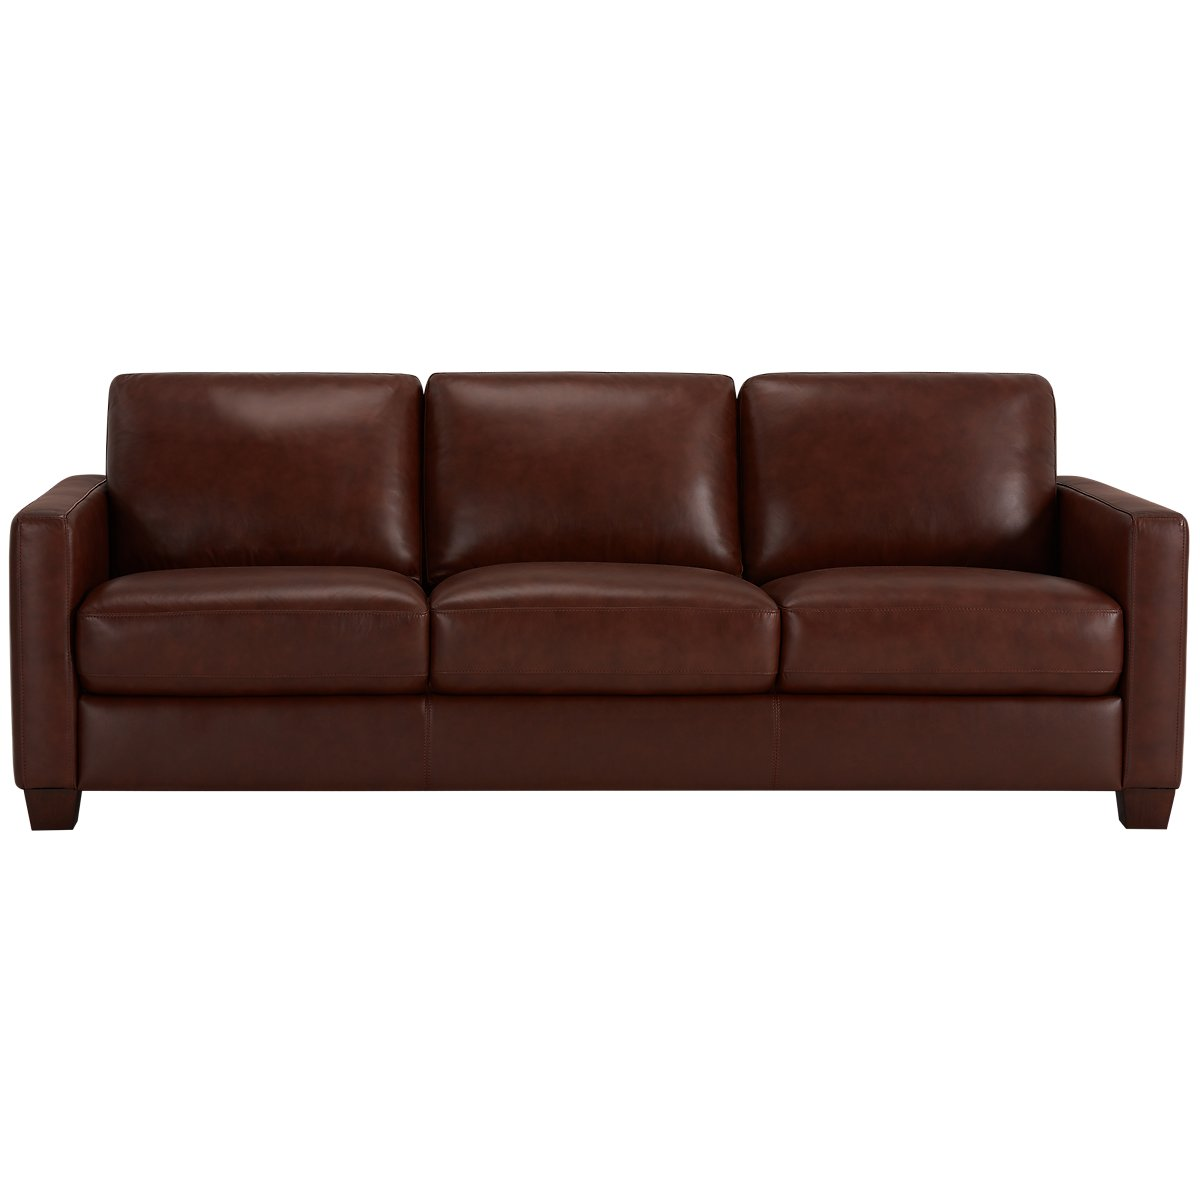 Medium Brown Leather Sofa Dye A Leather Couch Living Rooms